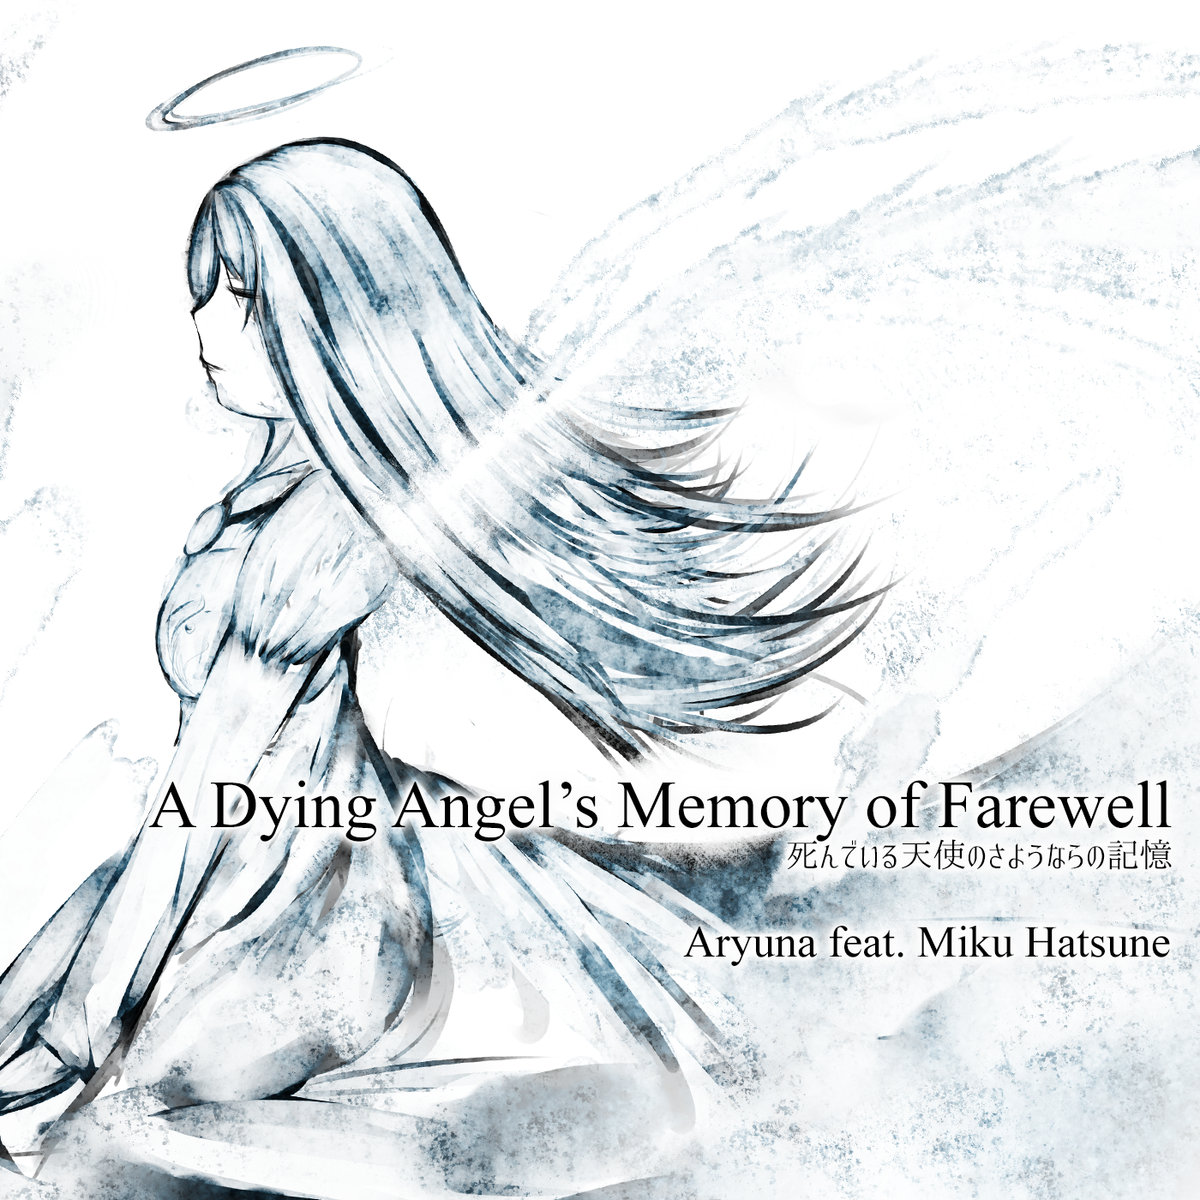 A Dying Angel's Memory of Farewell | Vocaloid Lyrics Wiki | FANDOM